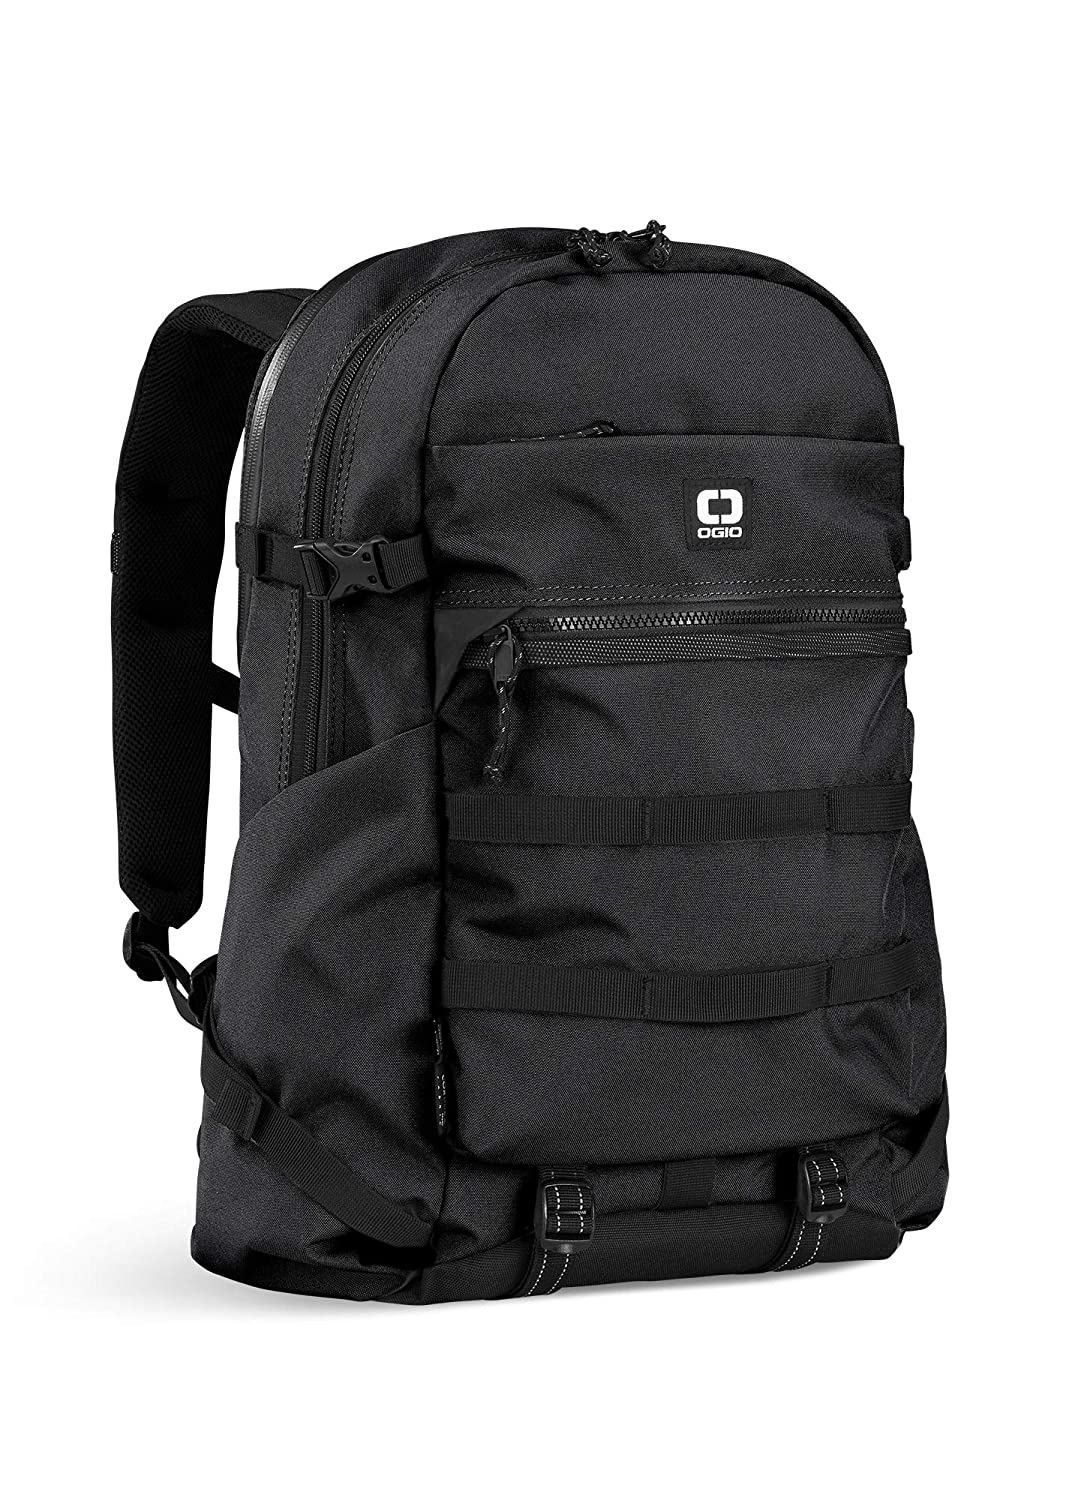 Ogio Laptop Backpack Review